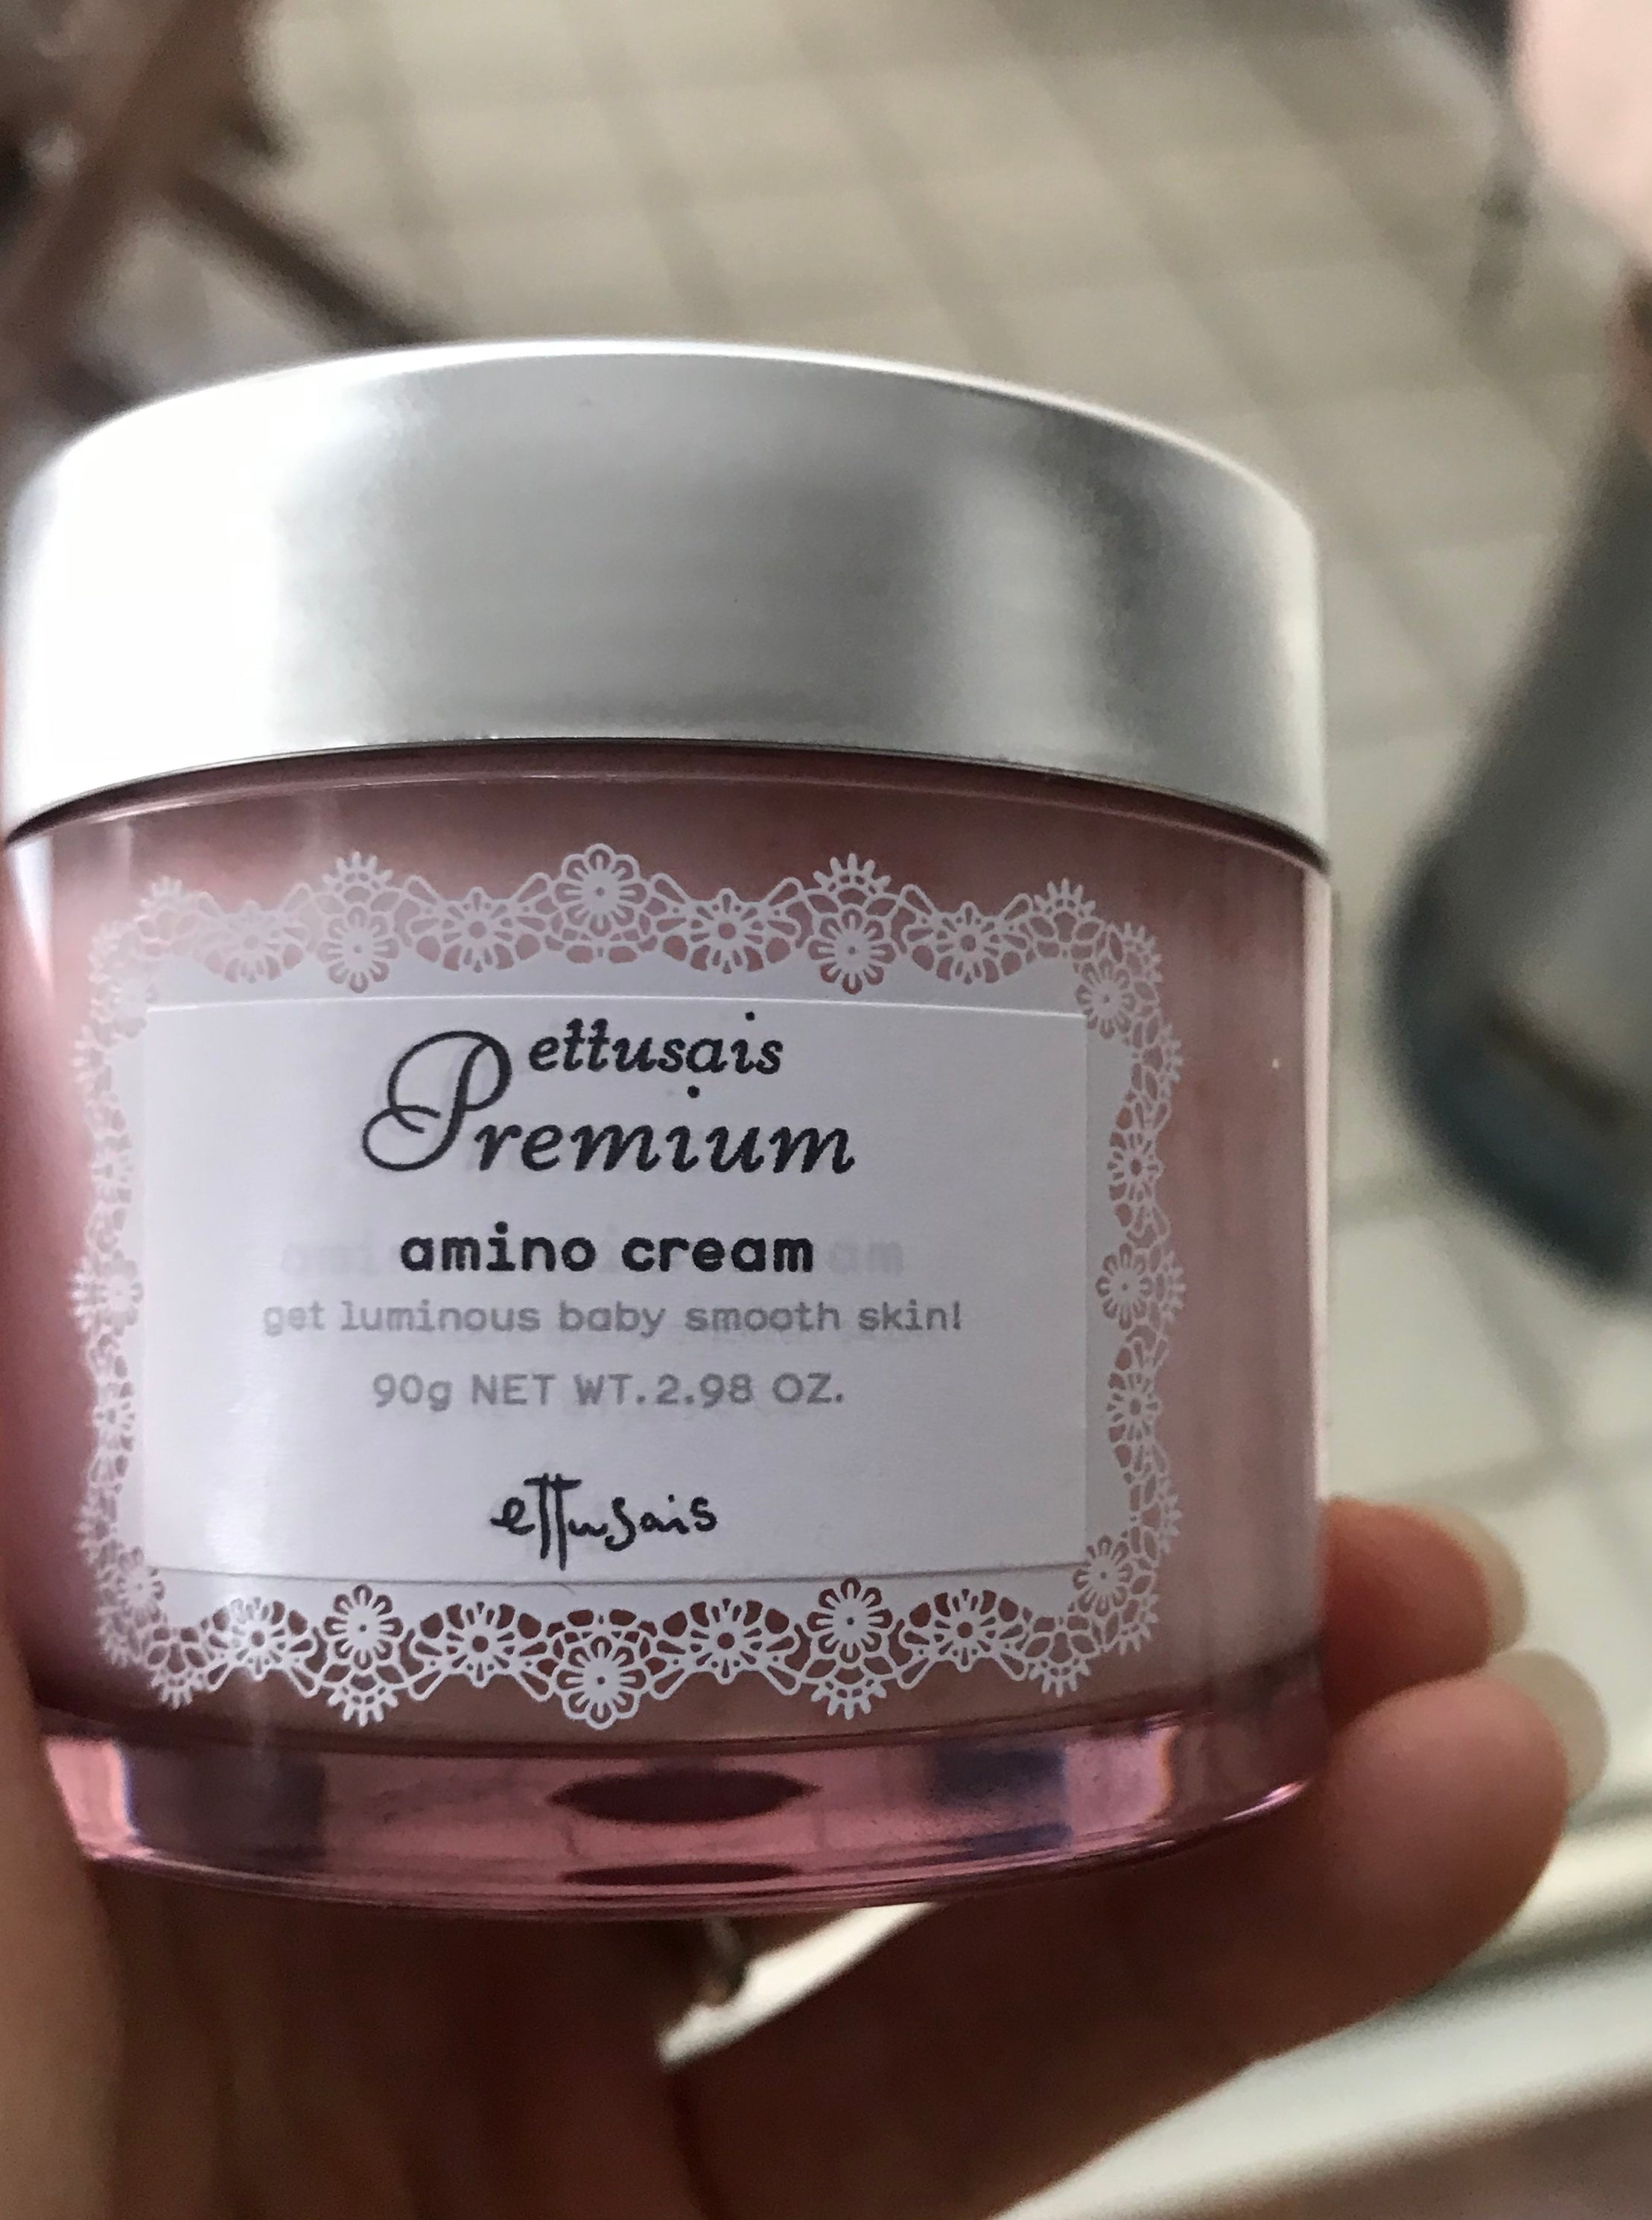 Review on Ettusais Premium Amino Caviar Cream